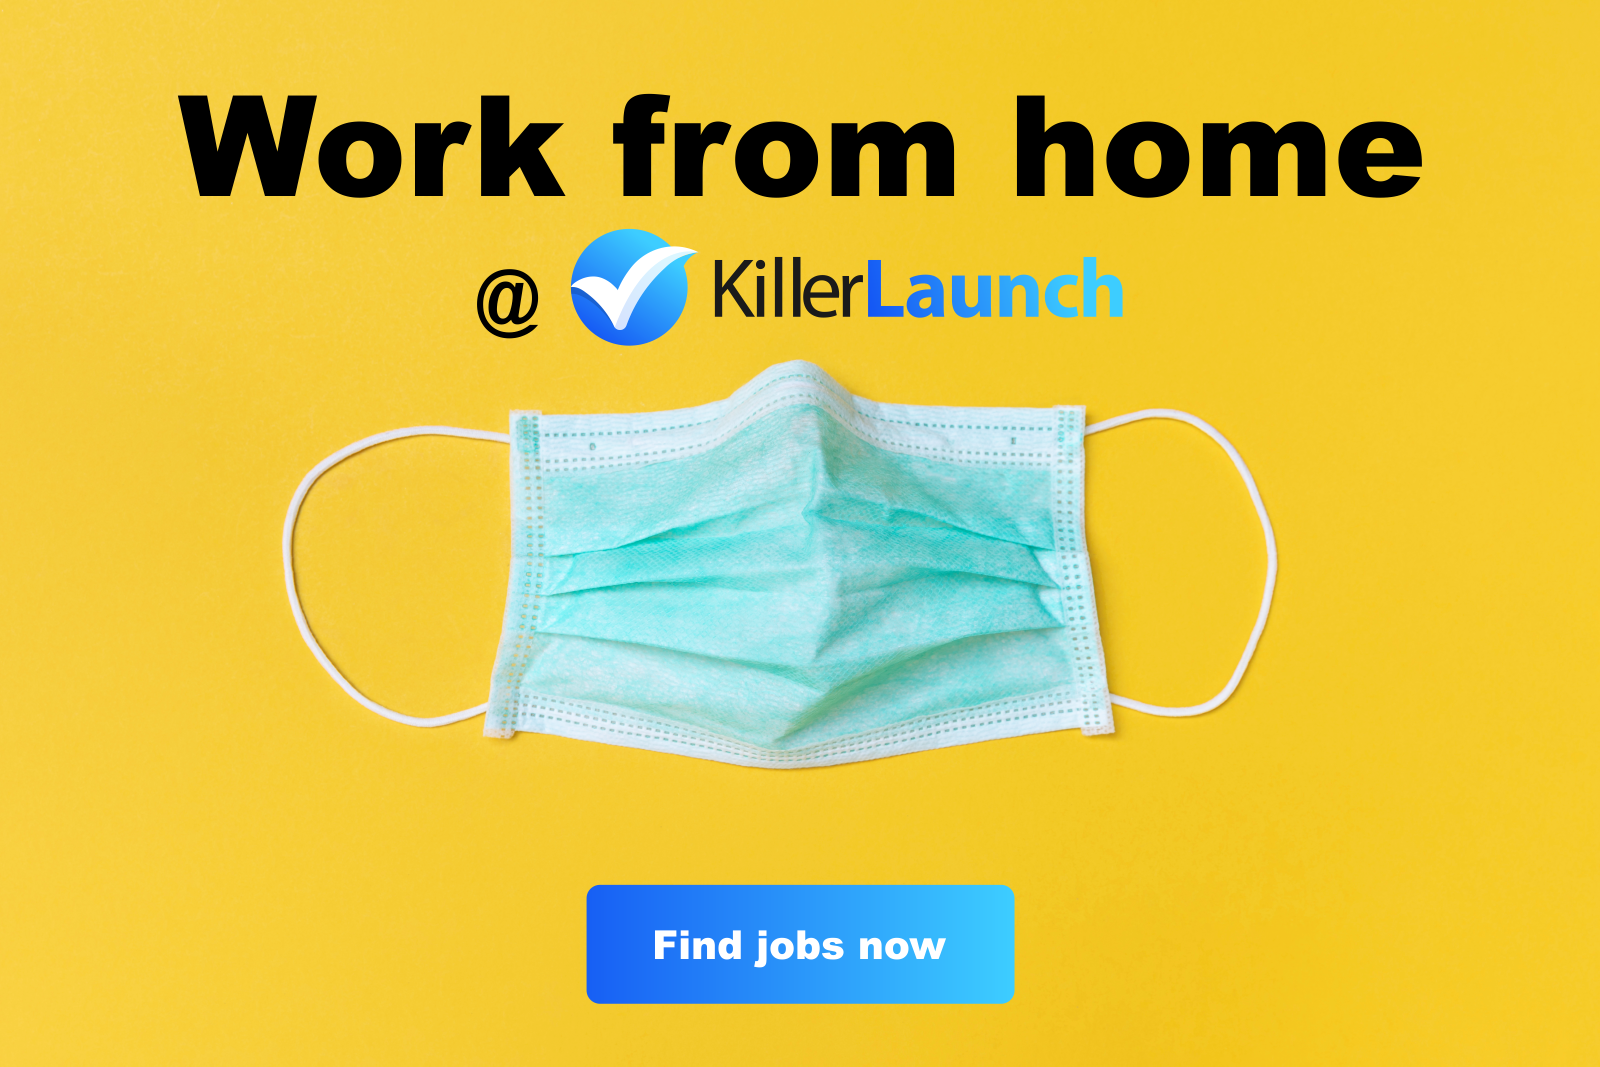 Killerlaunch workfromhome